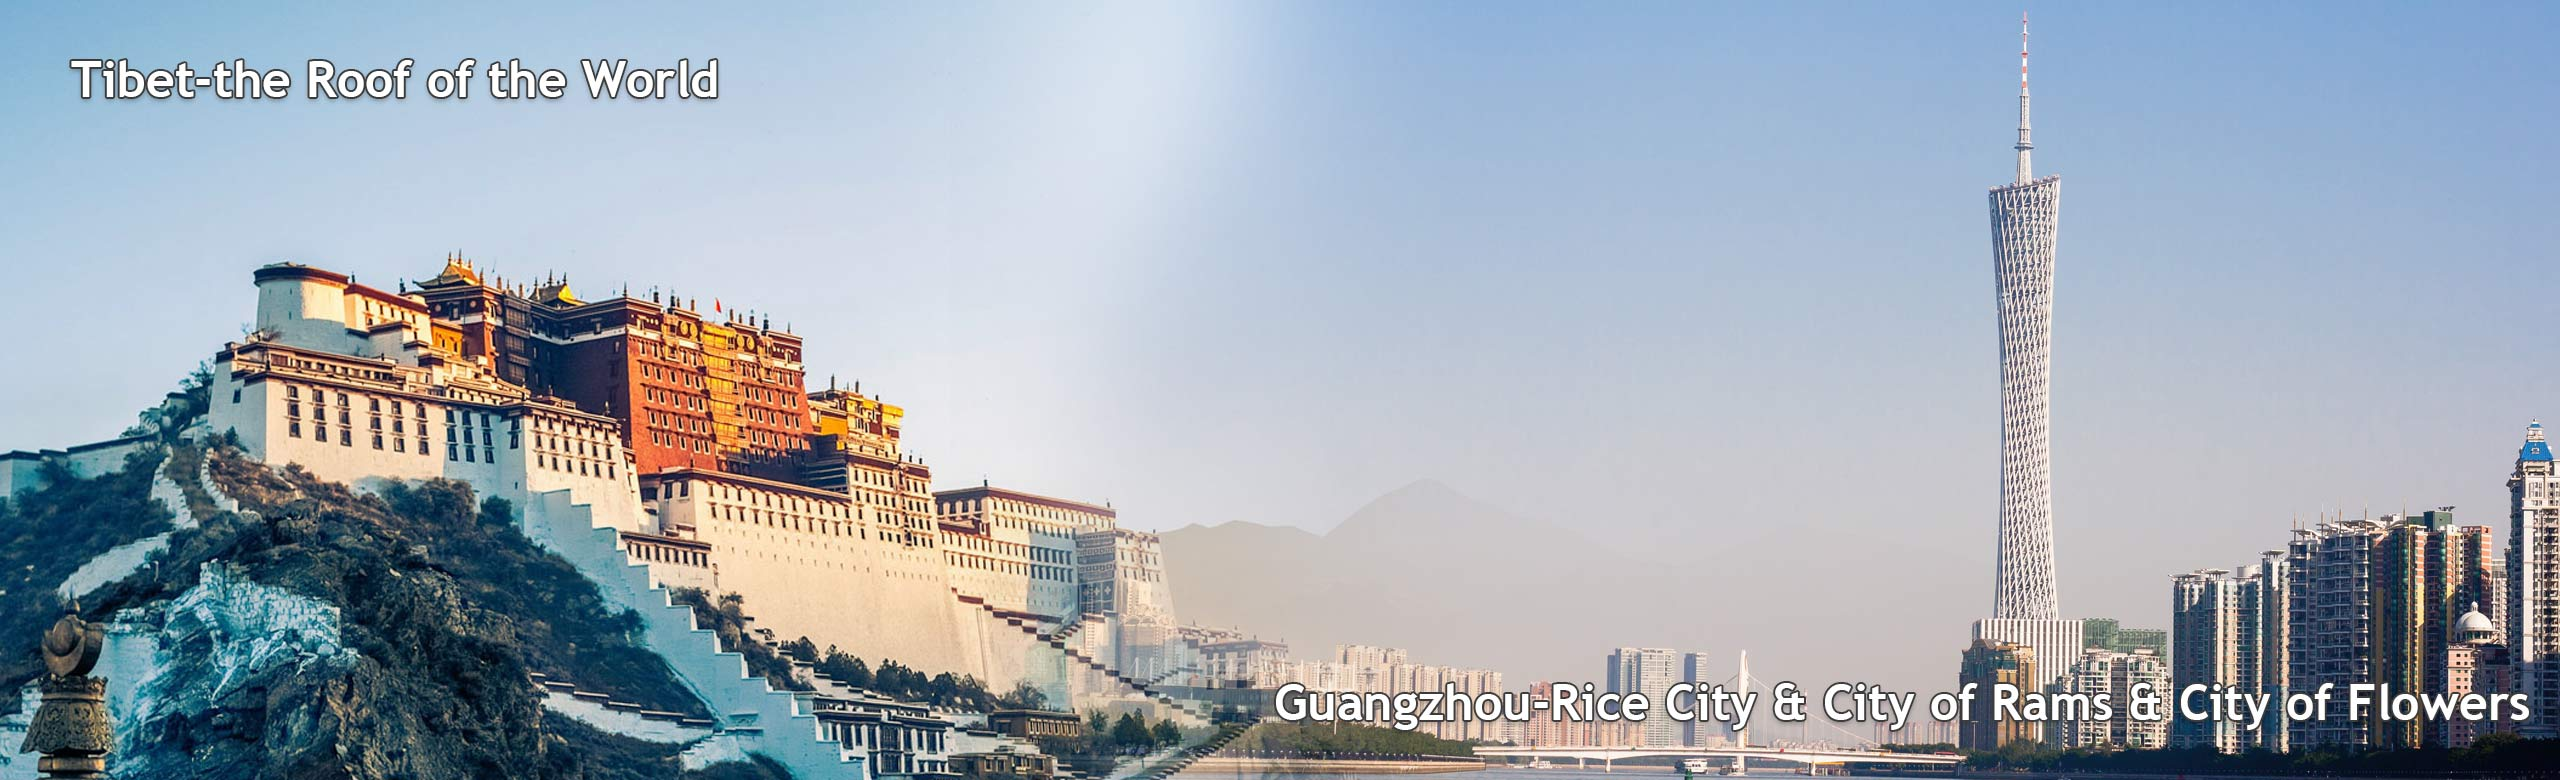 tibet and china history of a complex relationship quotes